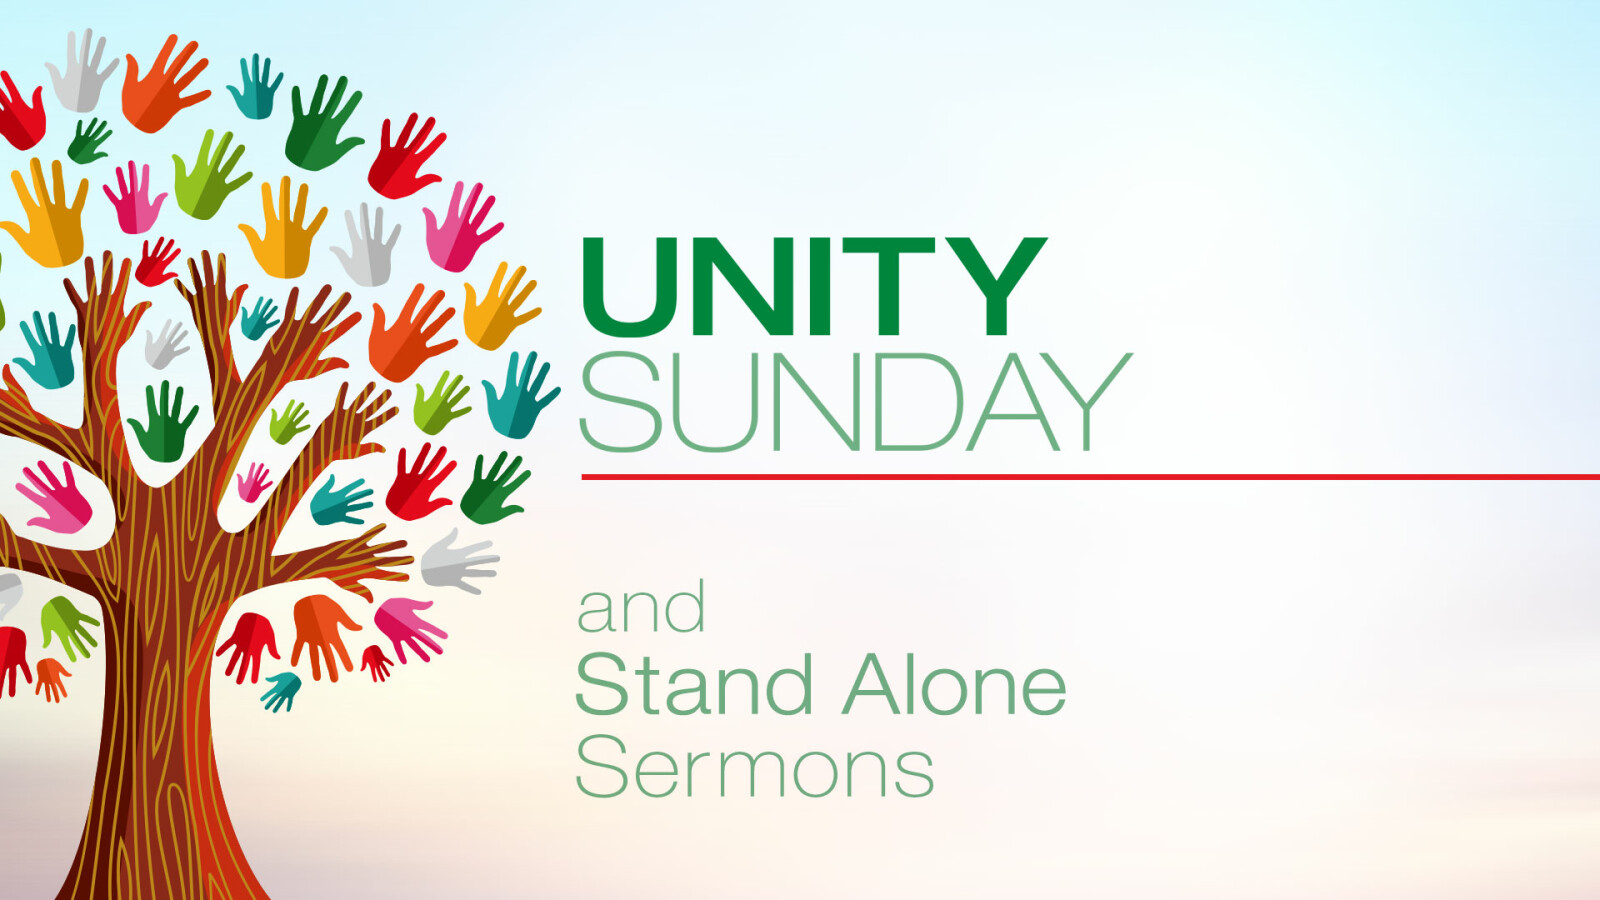 Unity Sunday and Thanksgiving Focus